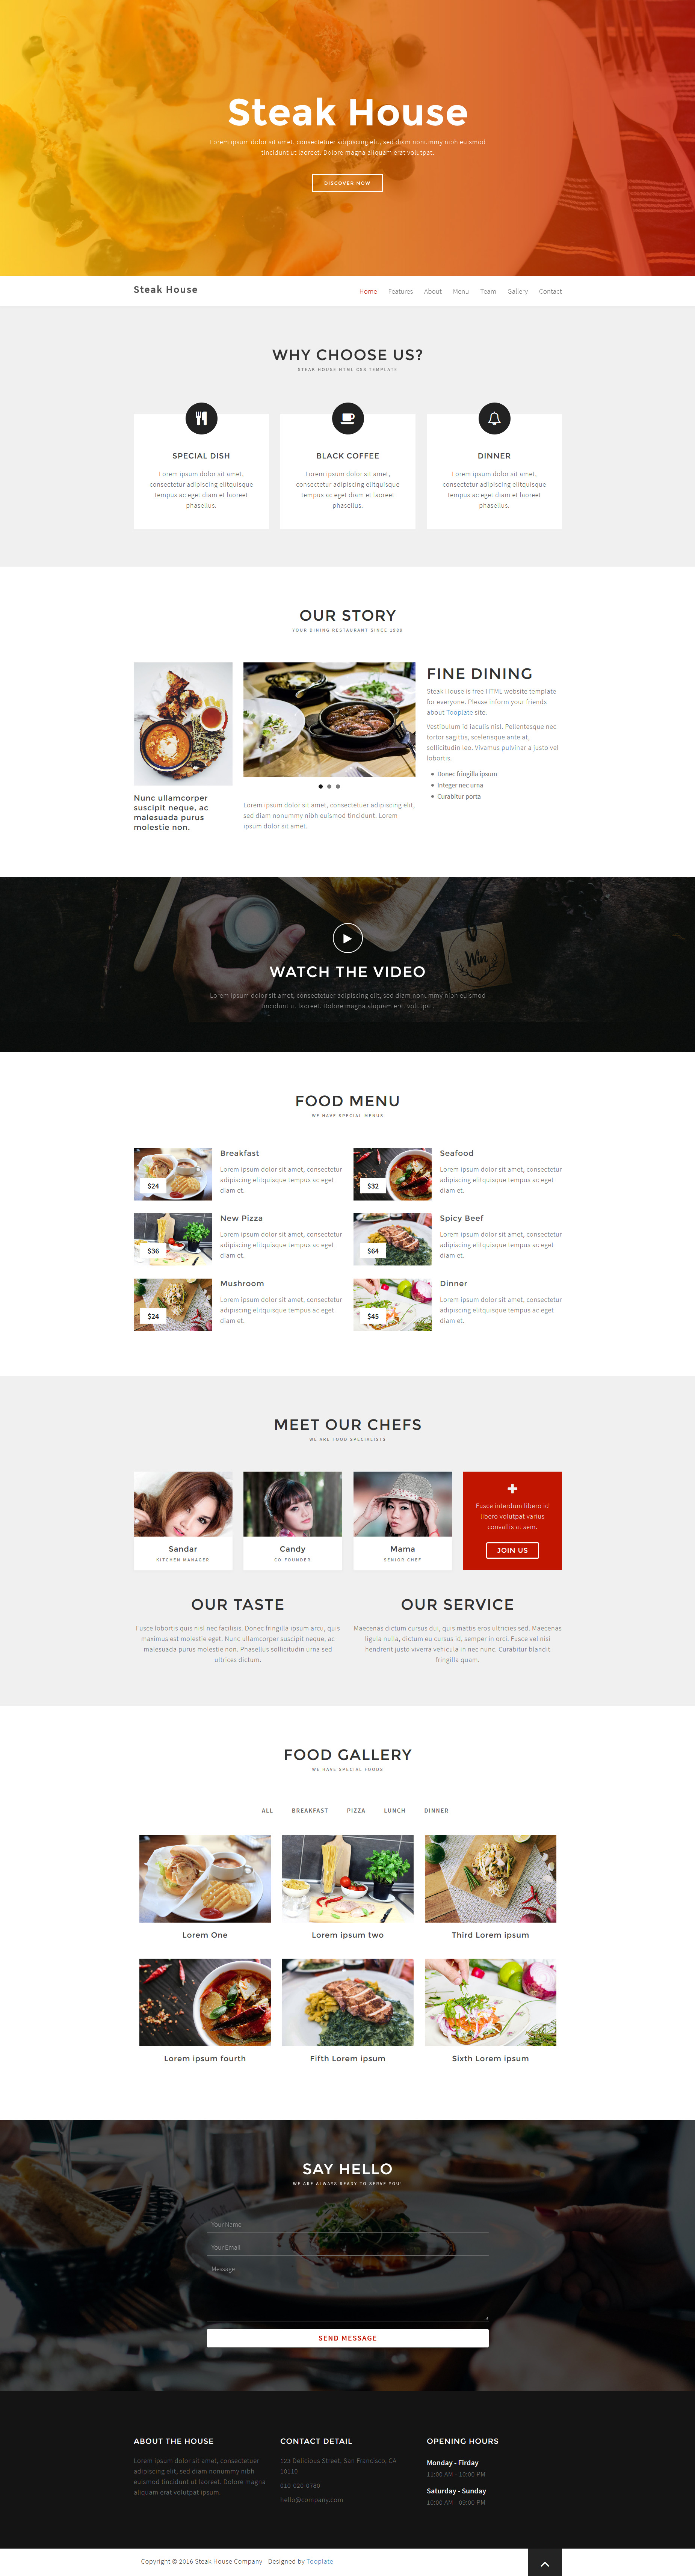 Steak House HTML Template | Free Bootstrap Templates | Pinterest ...